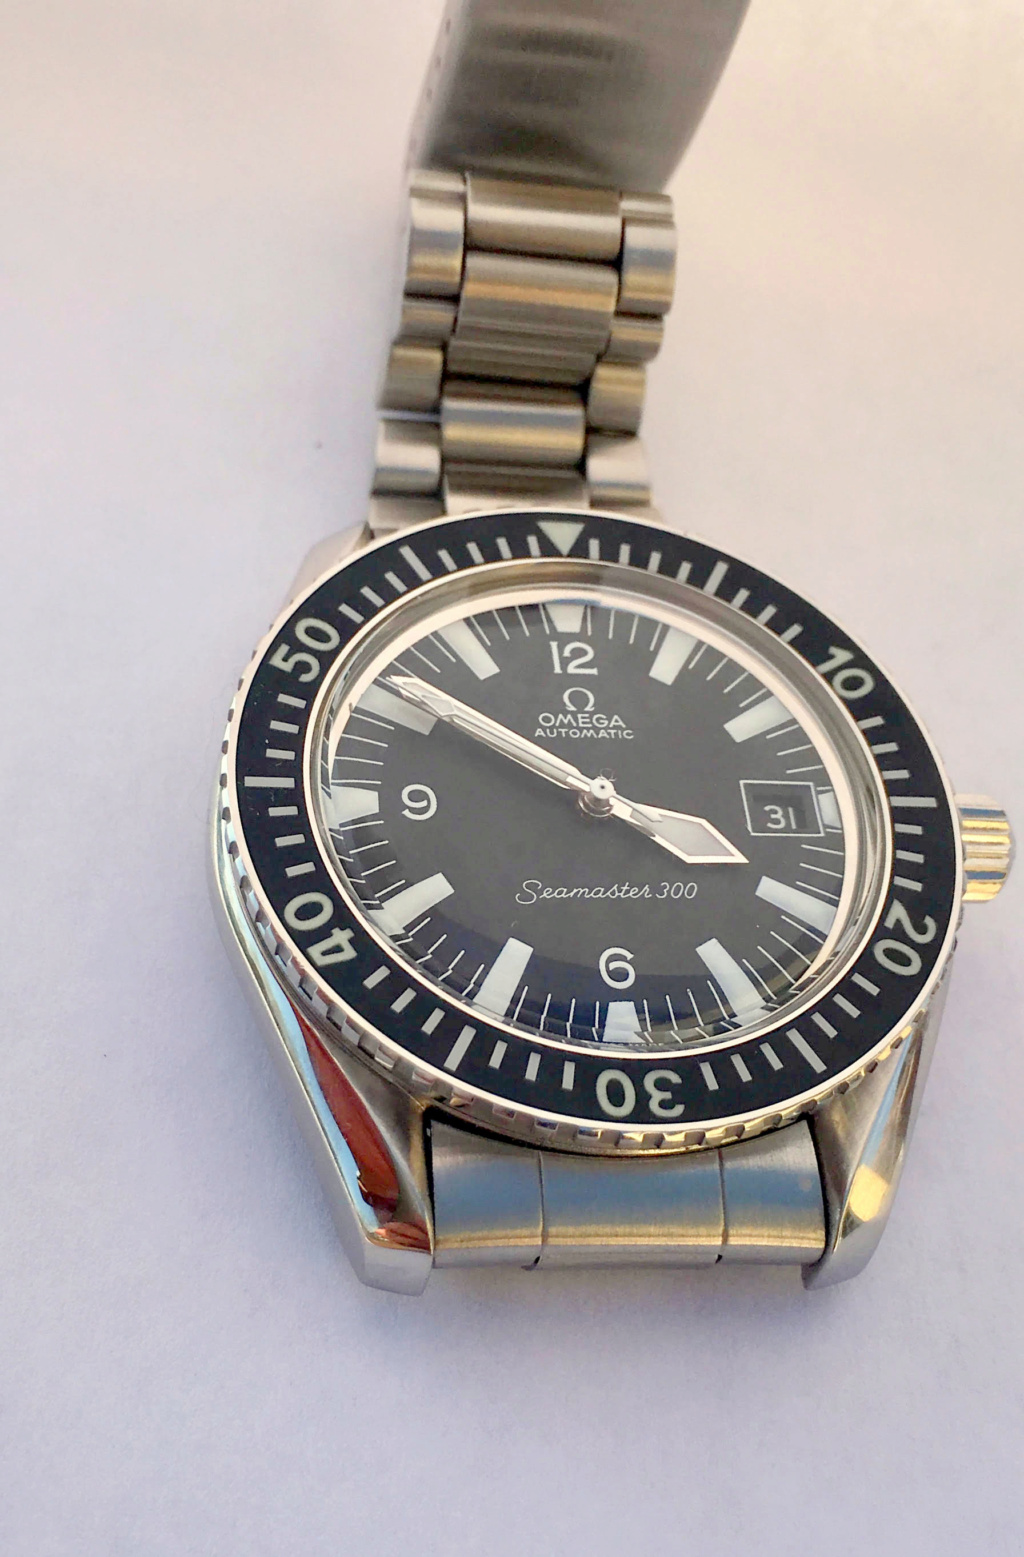 seamaster - [Baisse de prix][Vends] Omega Seamaster 300 type watchco Unname10